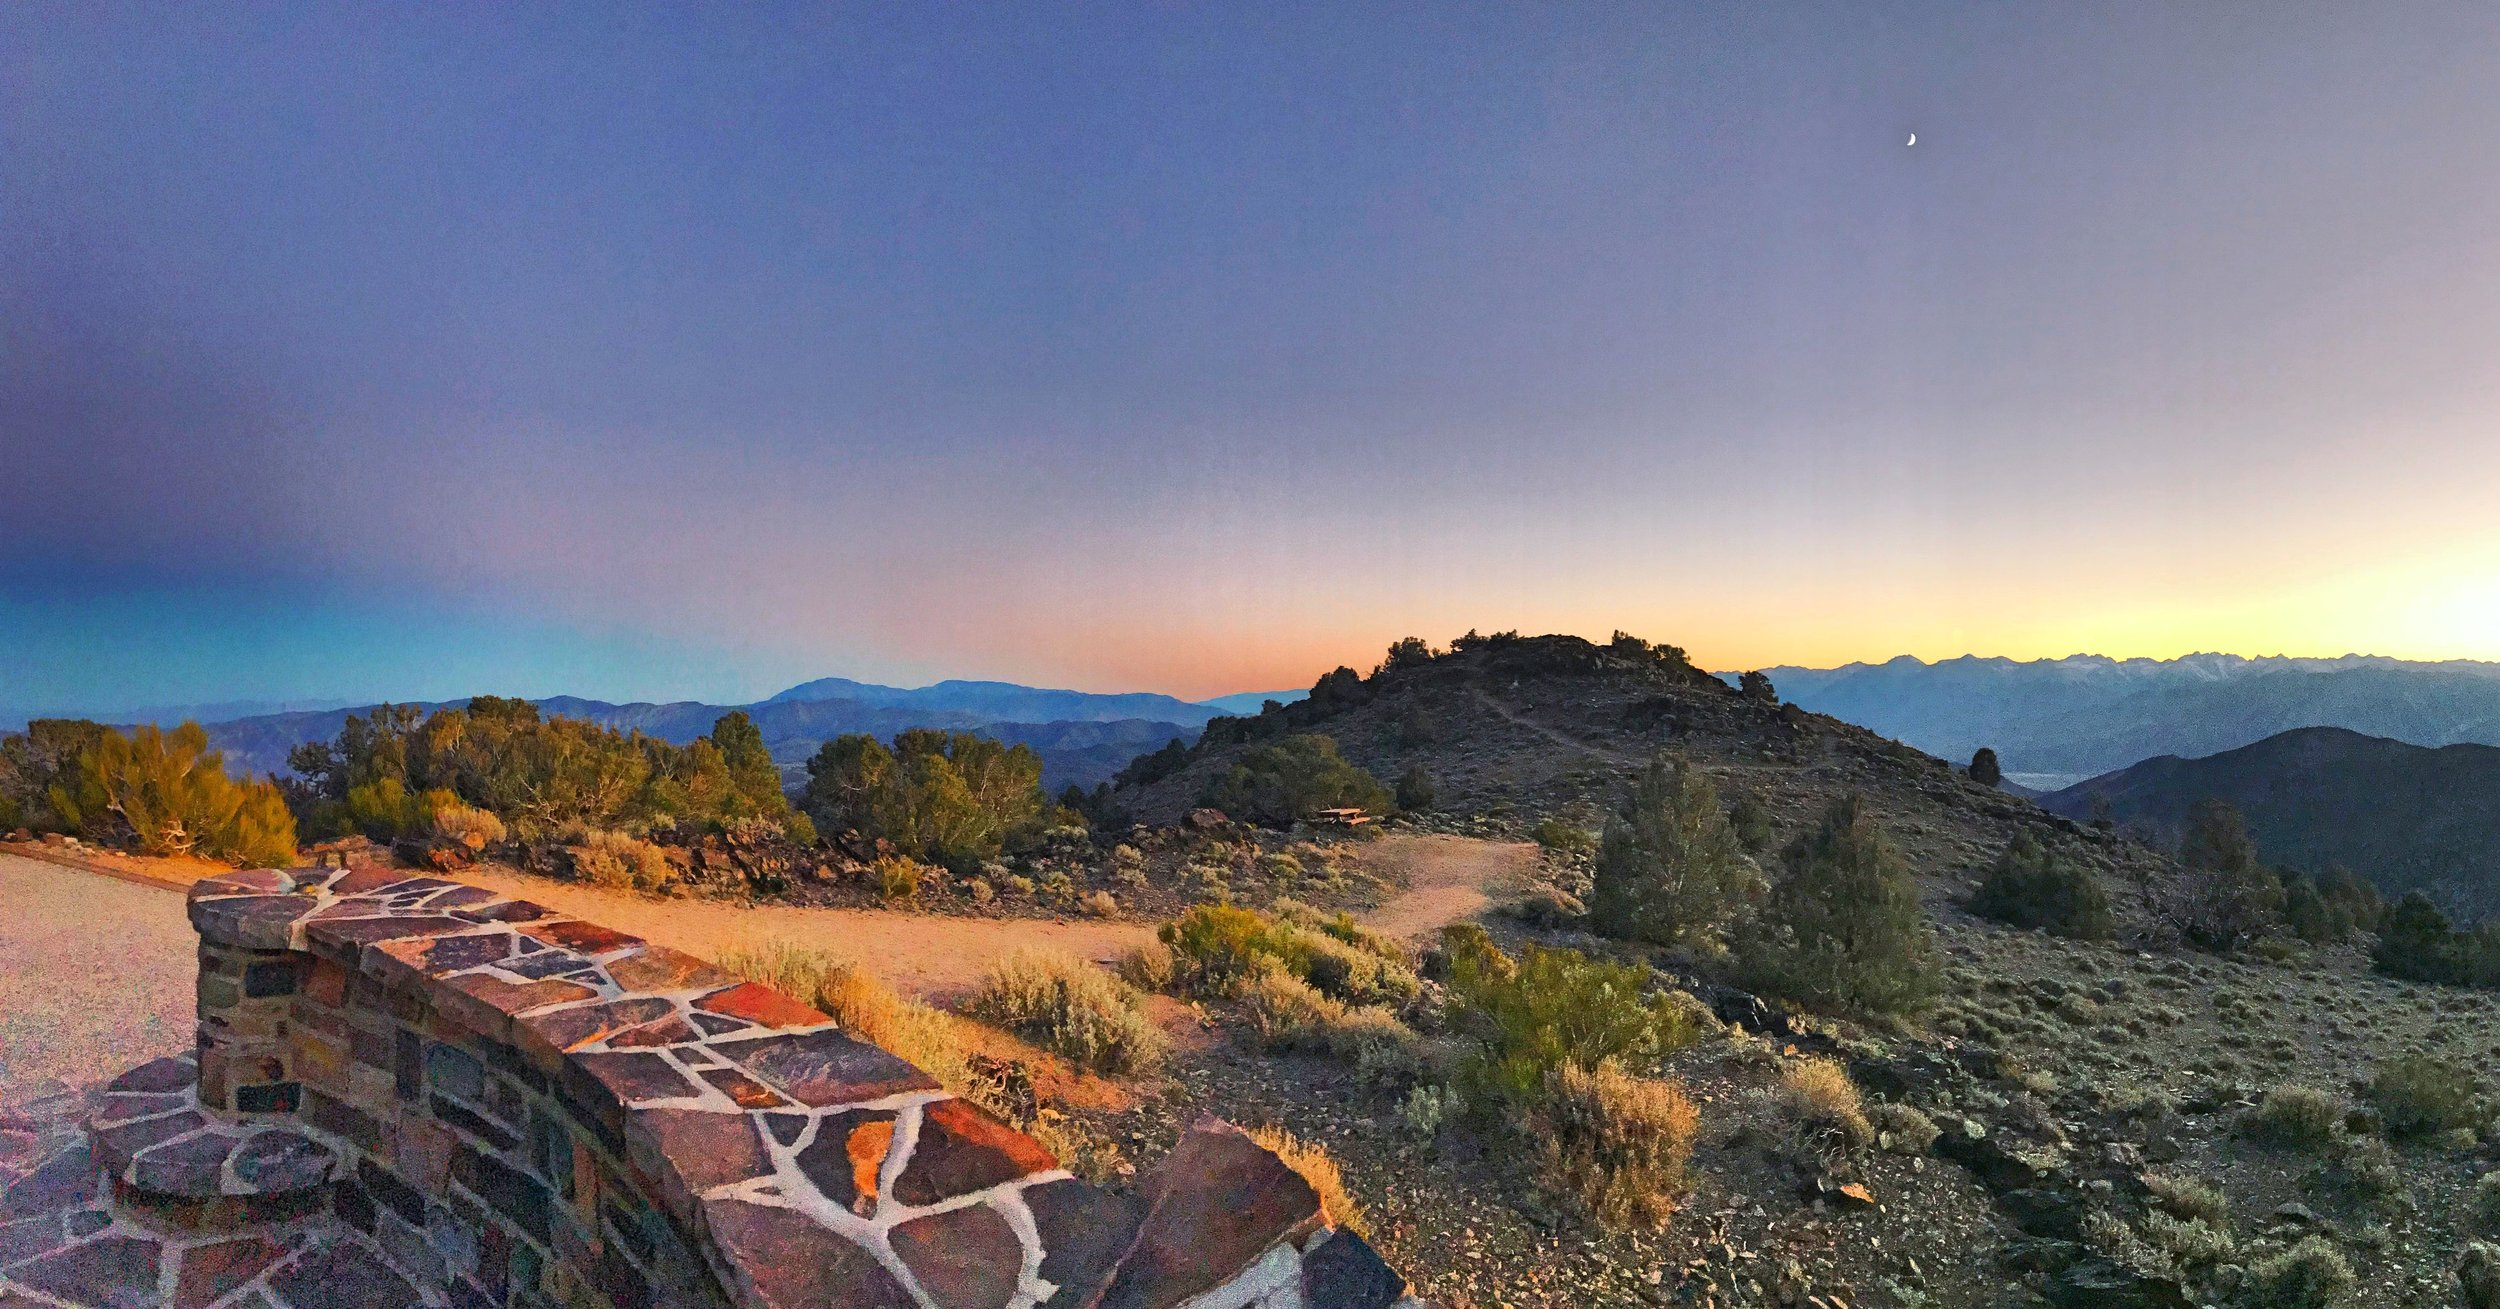 We caught the sunset at  this overlook  while coming down from the Ancient Bristlecone Pine Forest.